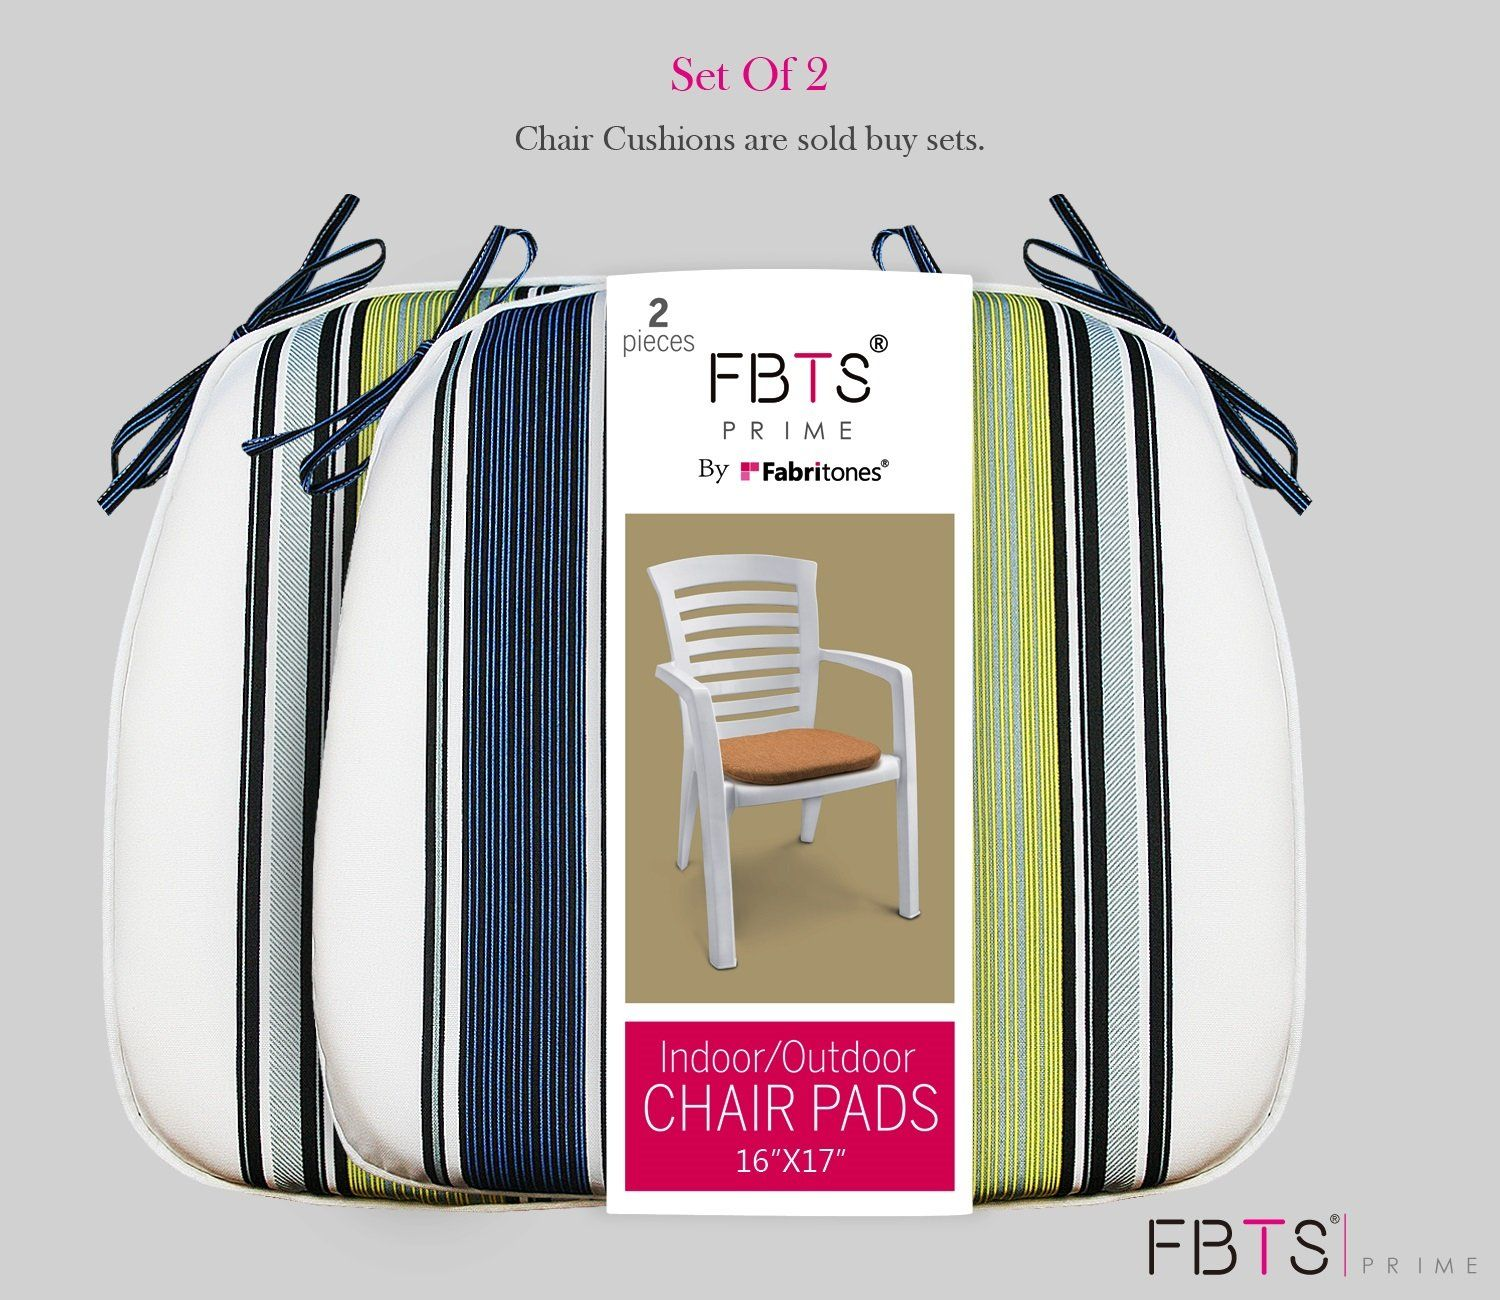 FBTS Prime Chair Cushion 7 x 7 Inches Indoor/Outdoor Seat Pads